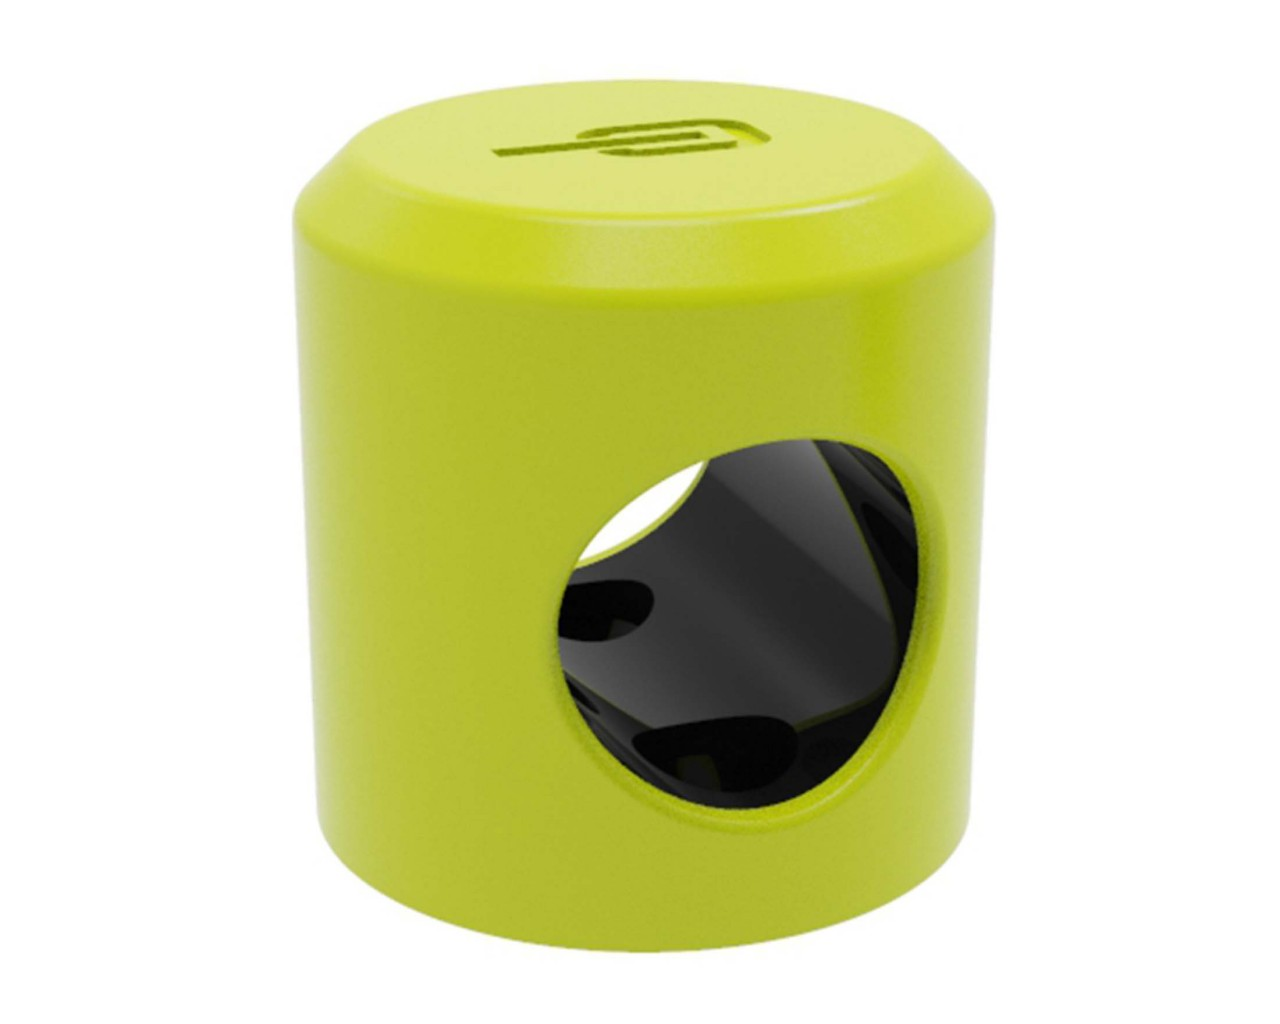 Hiplok ANKR Mini - Wall/Ground anchor for max. security | yellow